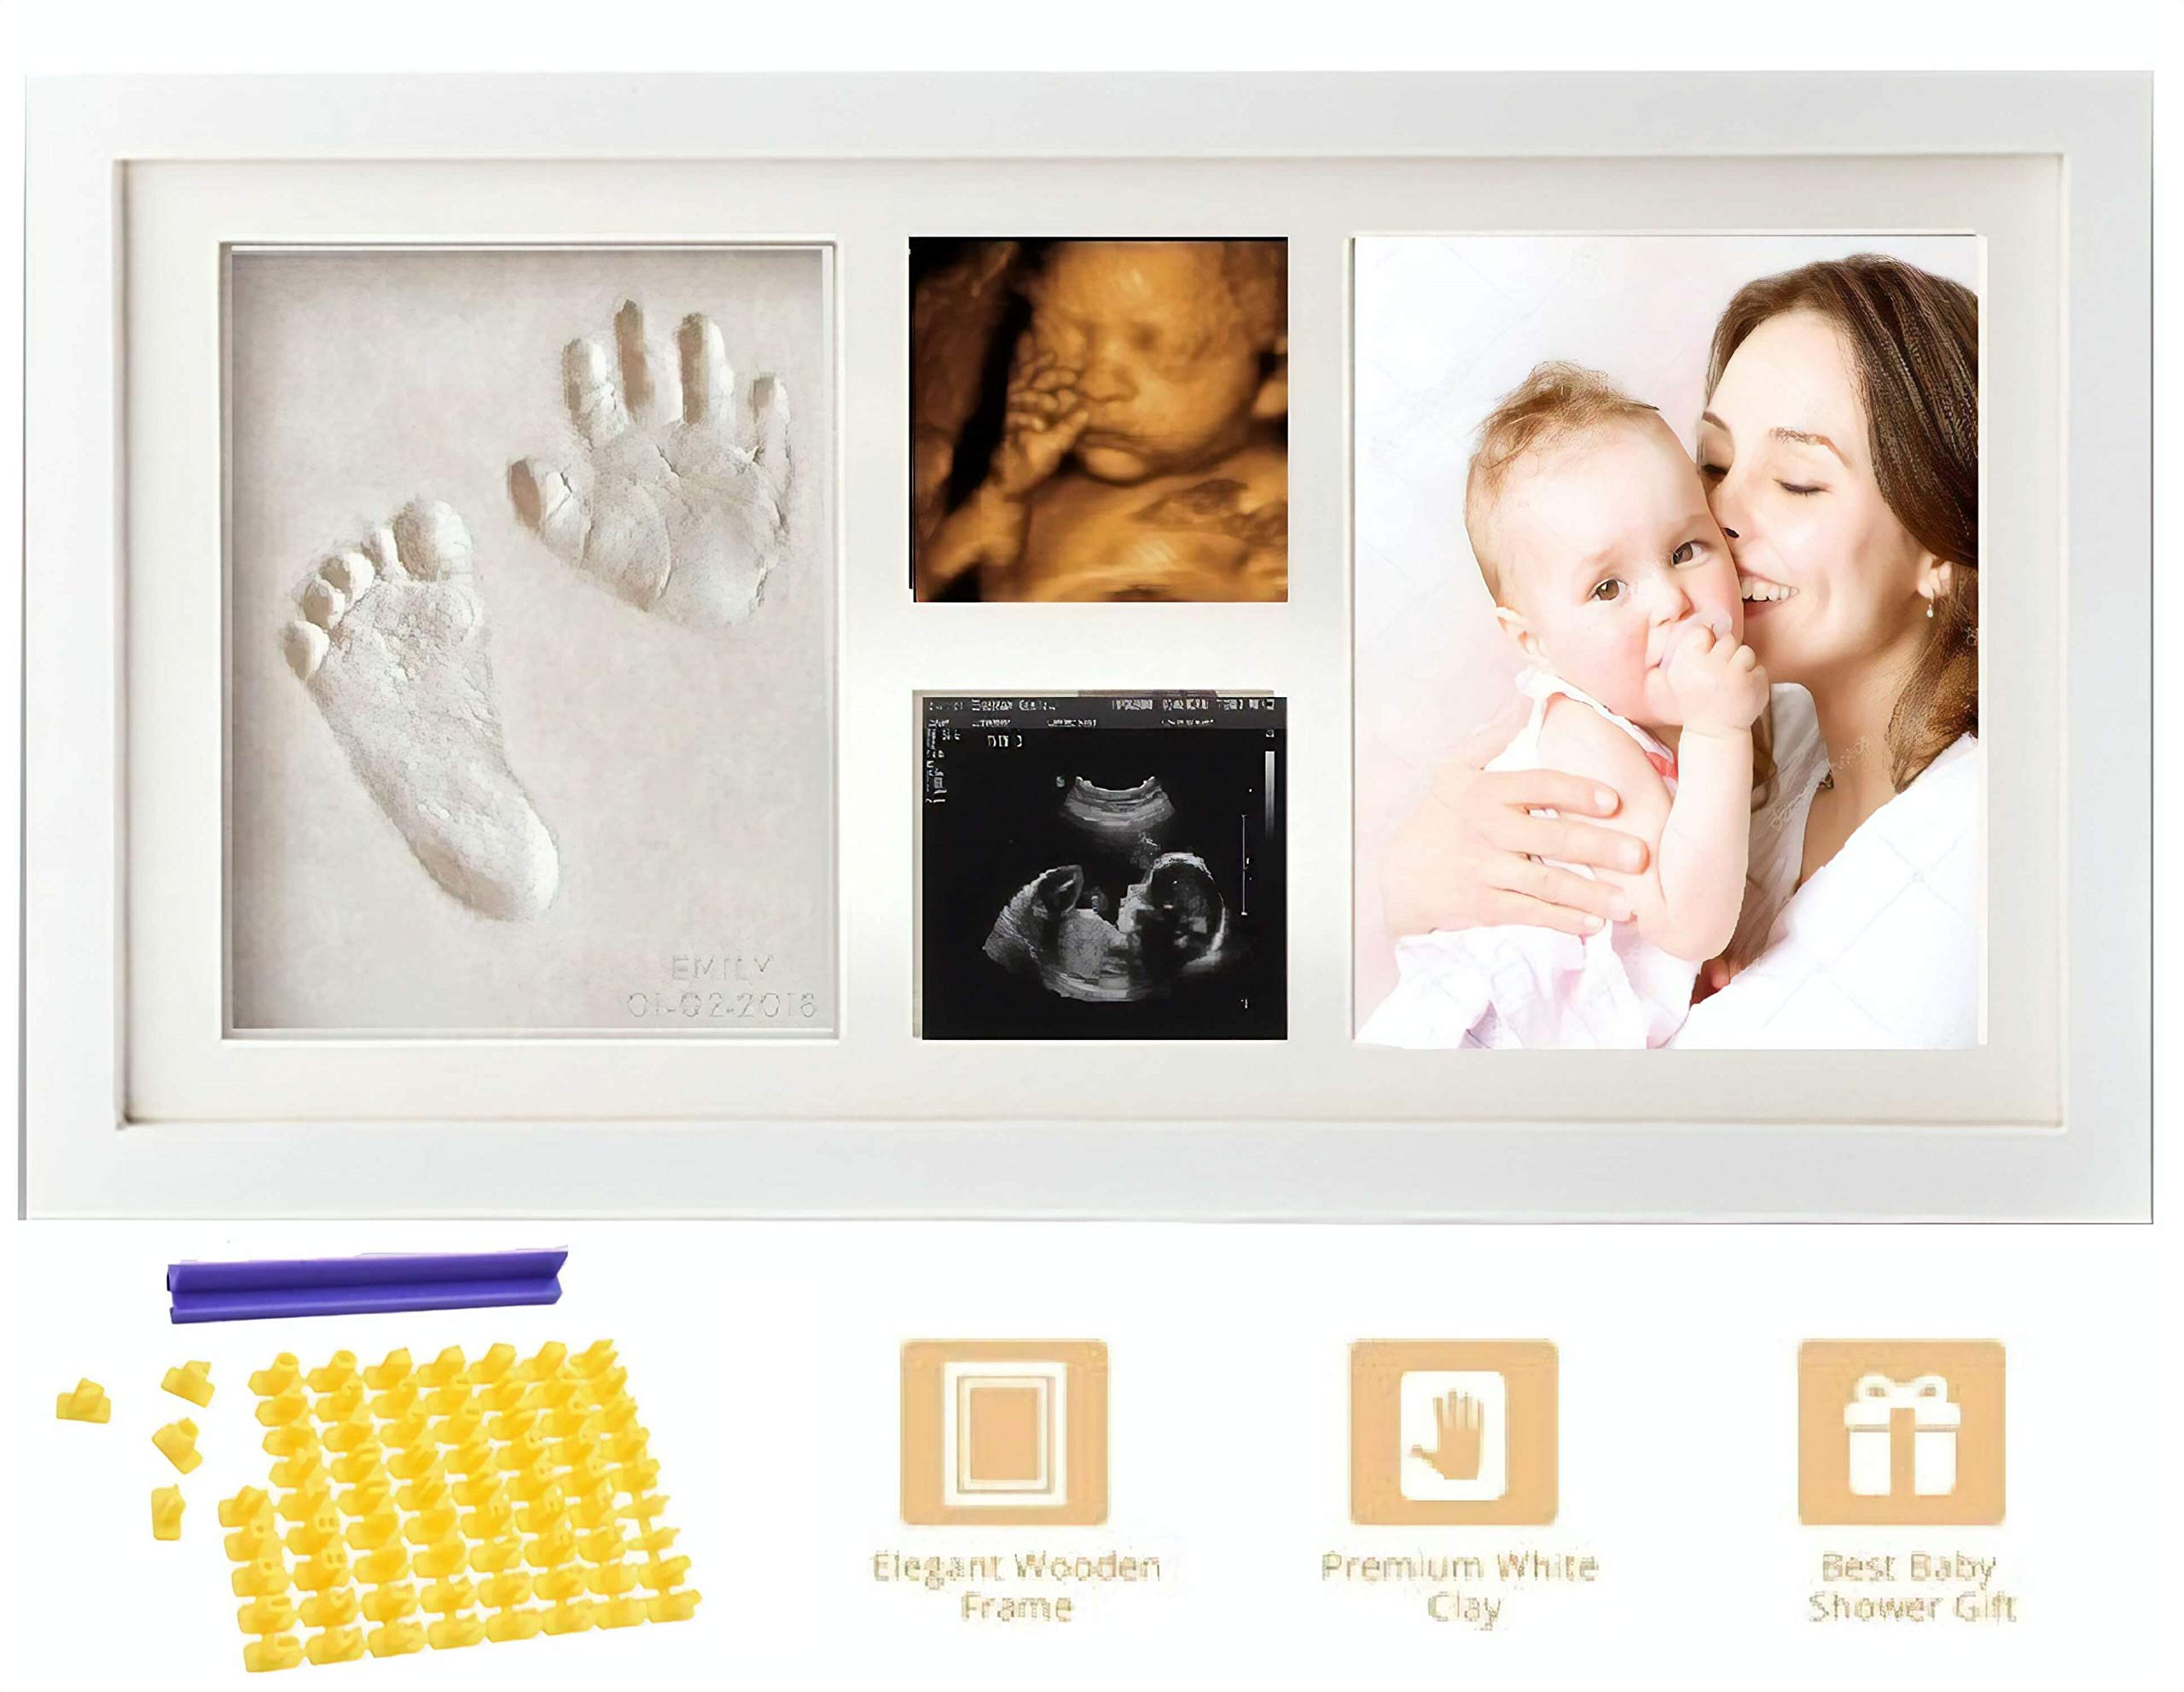 Baby Handprint and Footprint KIT & Ultrasound Picture Frame - with Silicone Mold